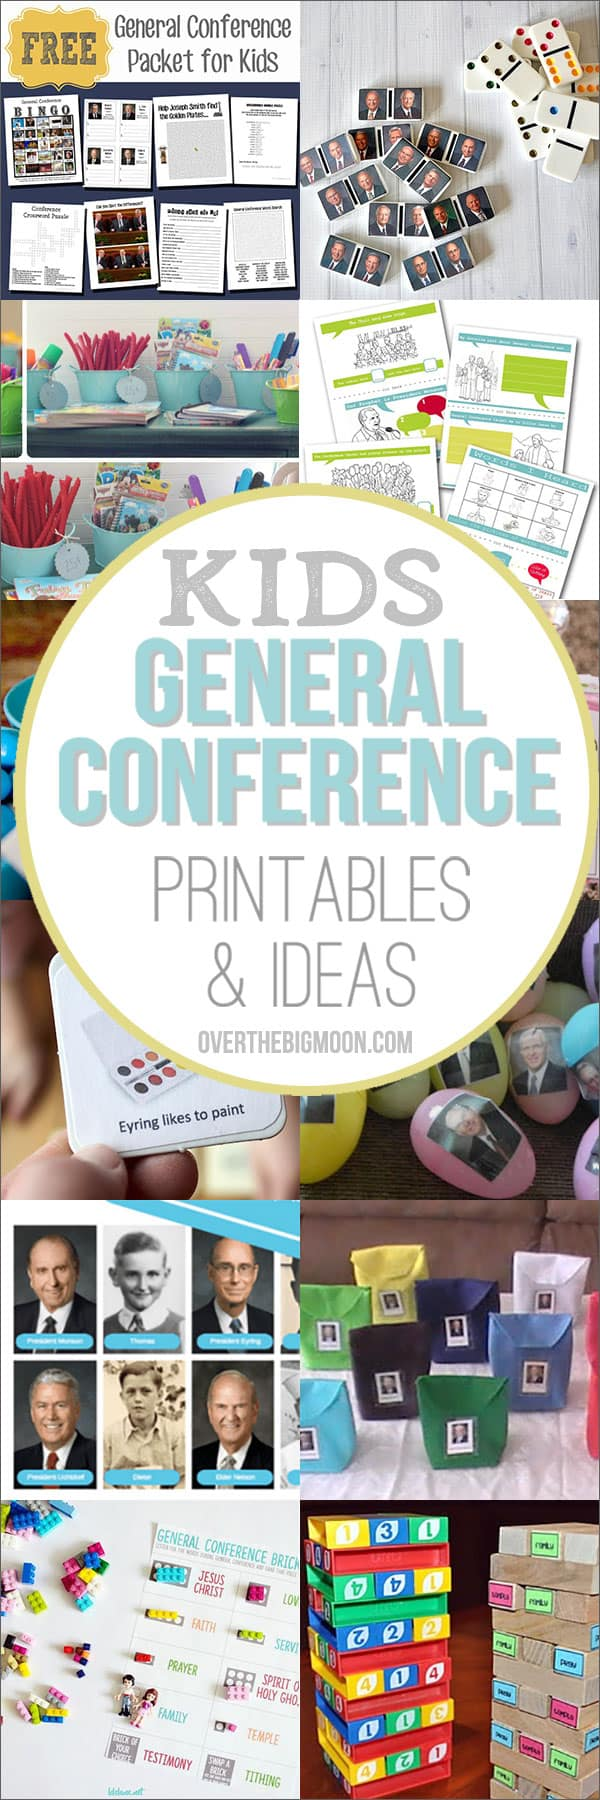 General Conference Printables and Ideas for Kids -- these ideas are the perfect way to help keep your kids entertained and engaged during General Conference! From overthebigmoon.com!